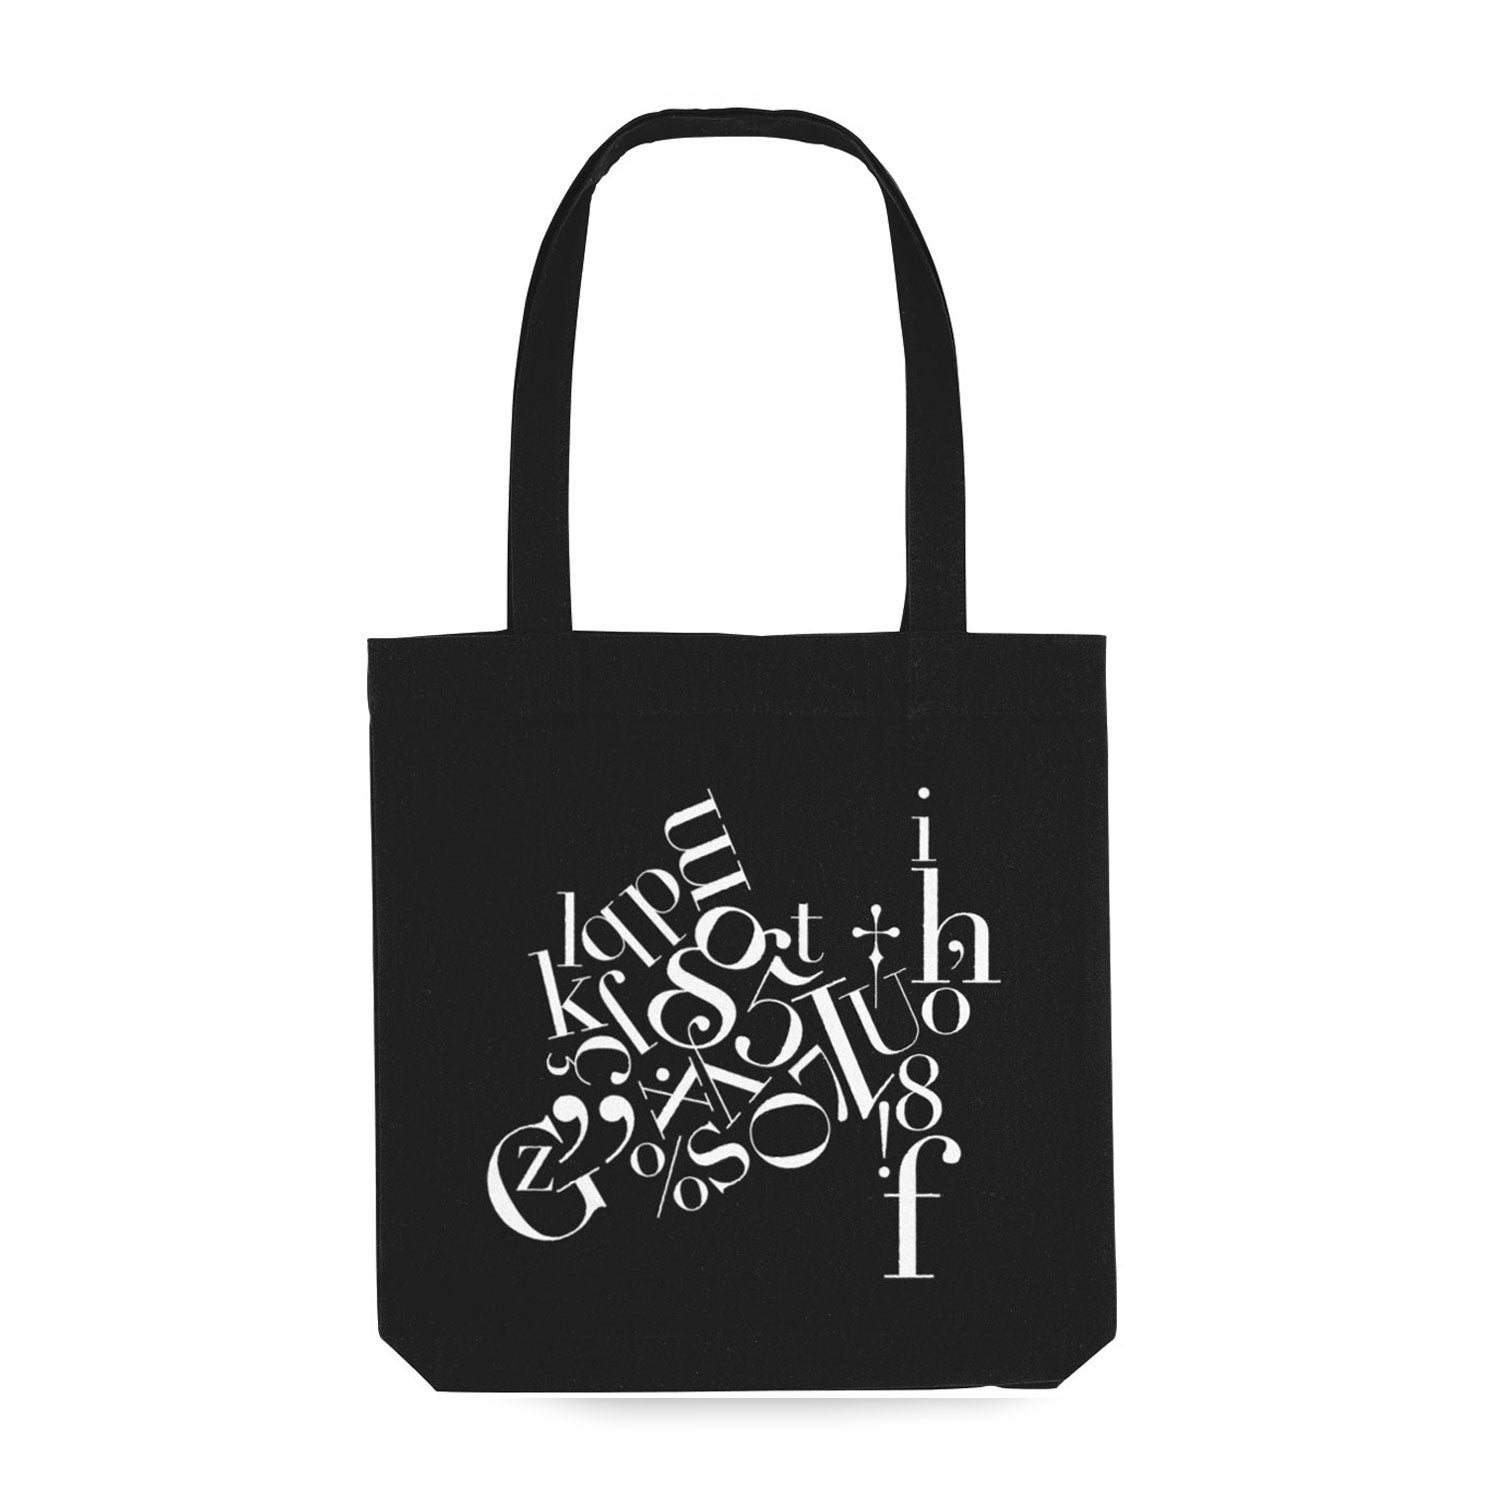 black tote bag with white jumbled lettering decoration